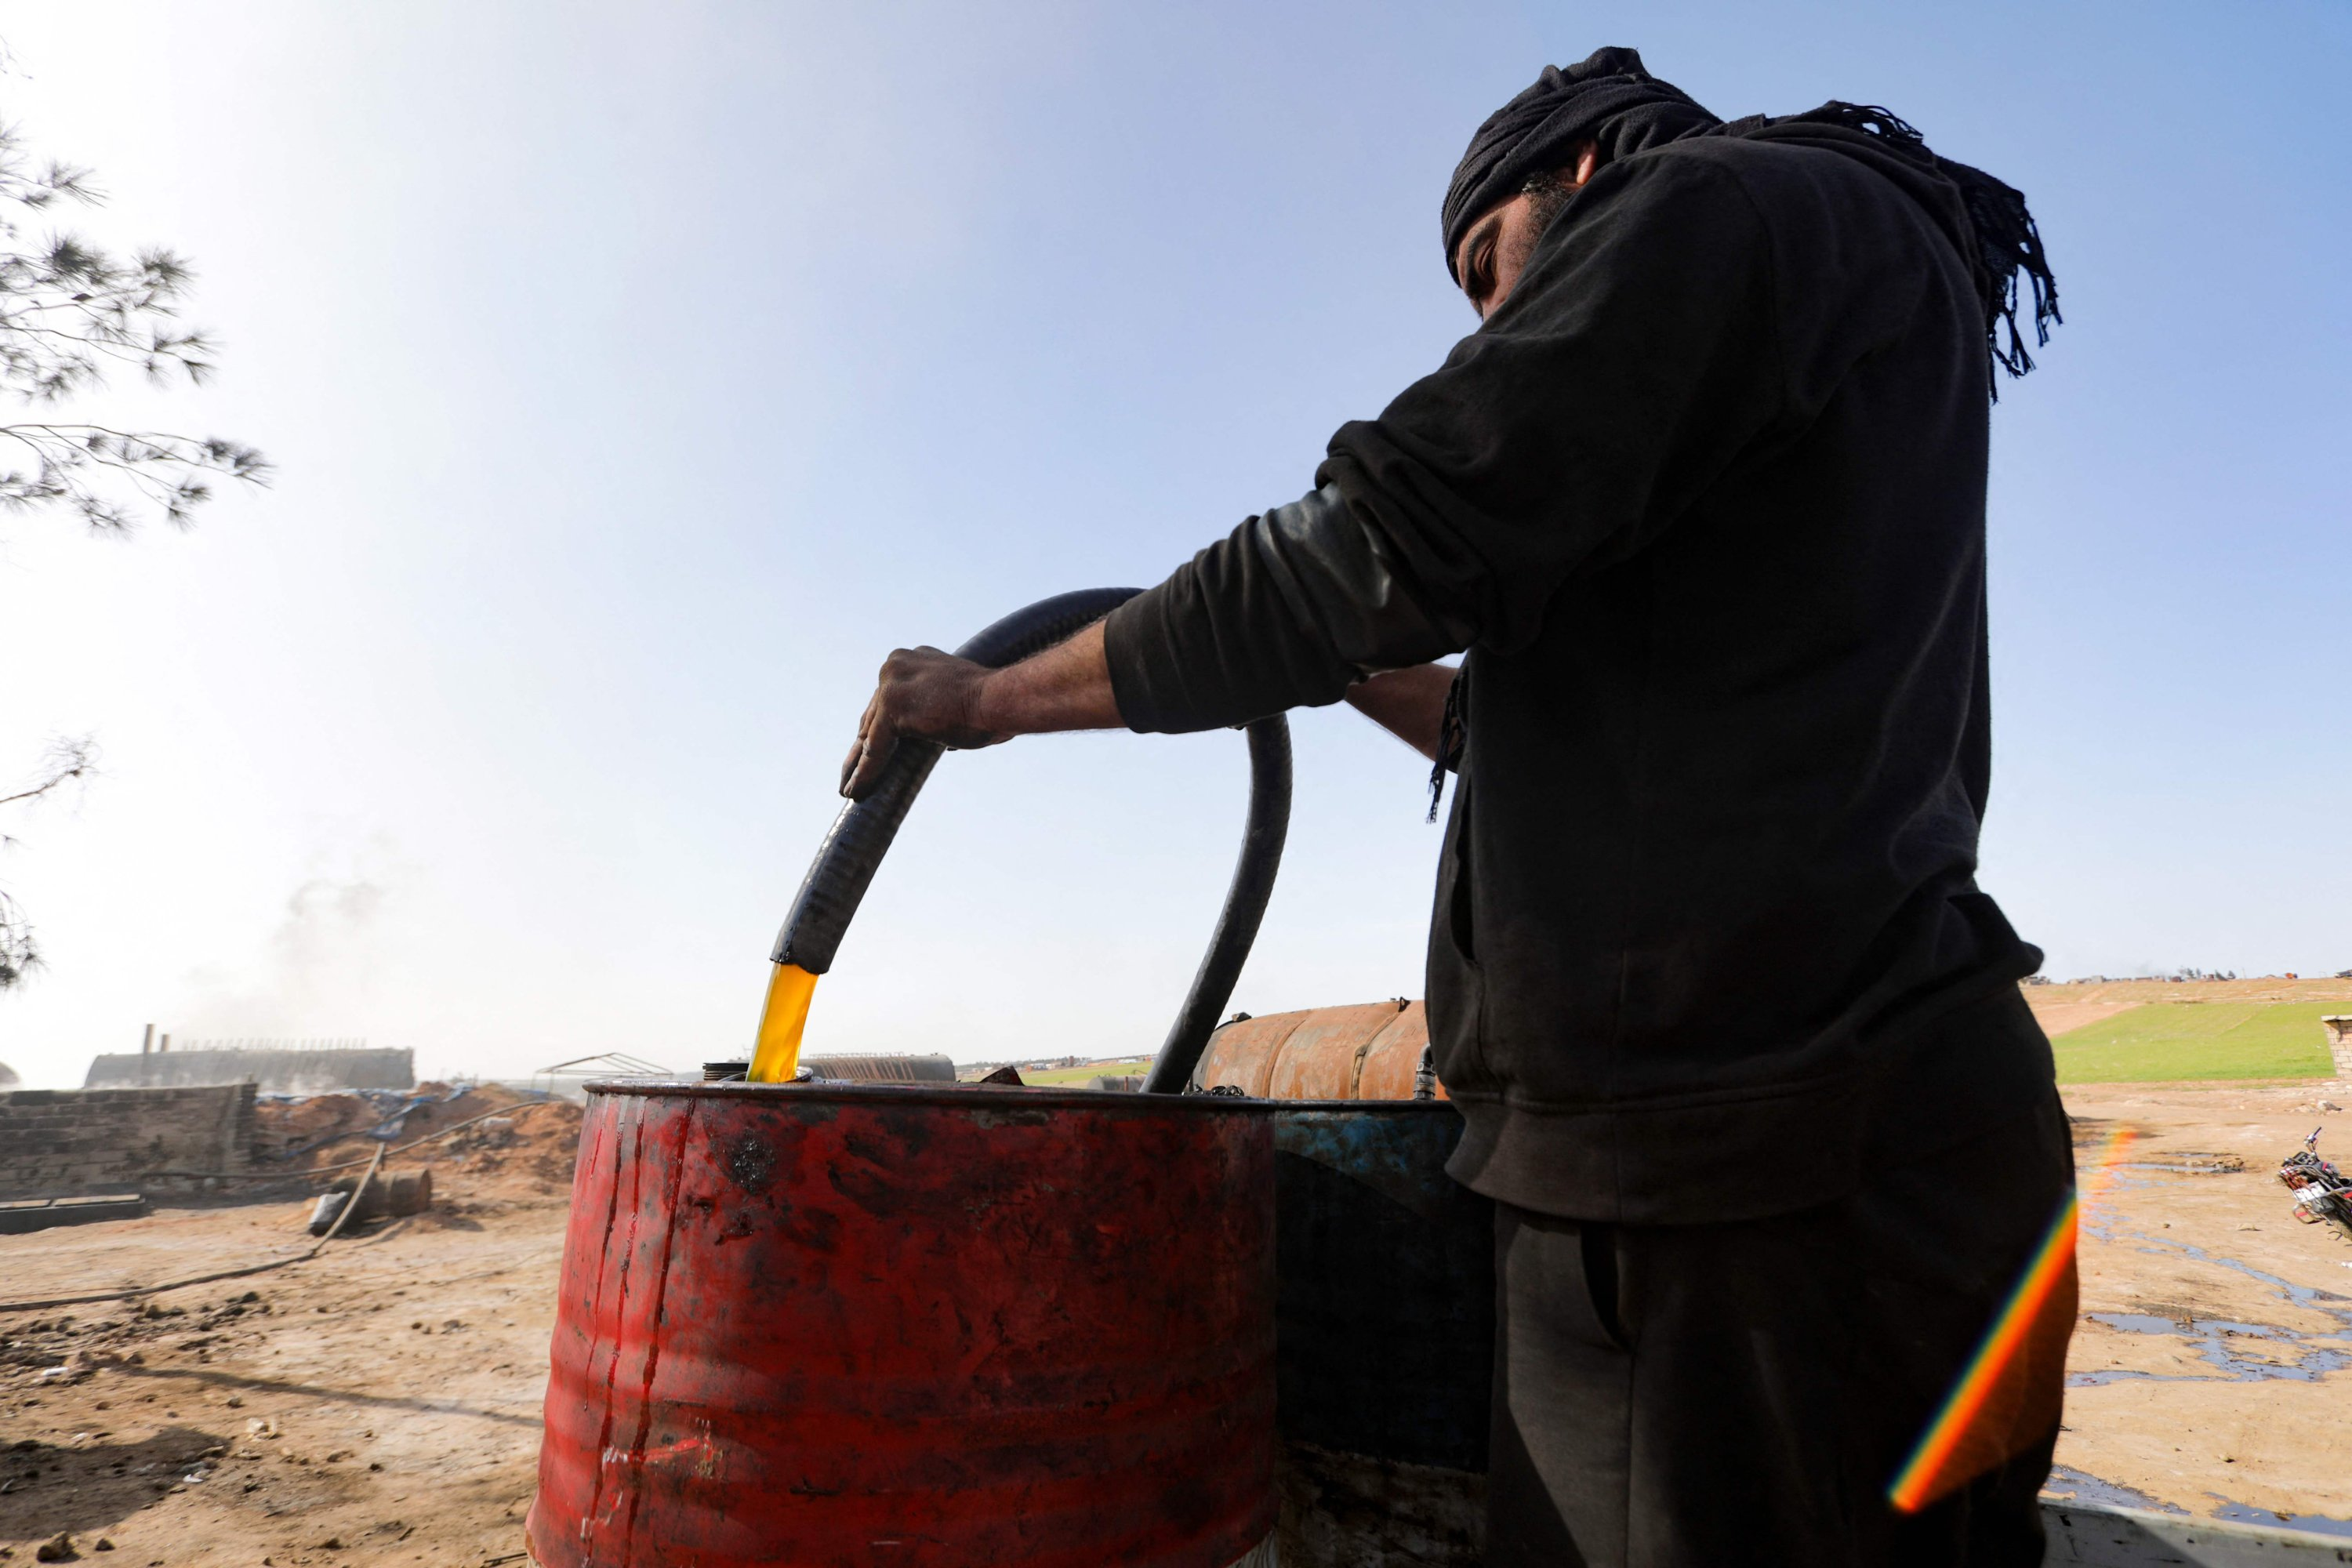 A displaced Syrian man works at a makeshift oil refinery near the village of Tarhin, in the northern countryside of Aleppo, Syria, Feb. 25, 2021. (Photo by Bakr ALKASEM / AFP)